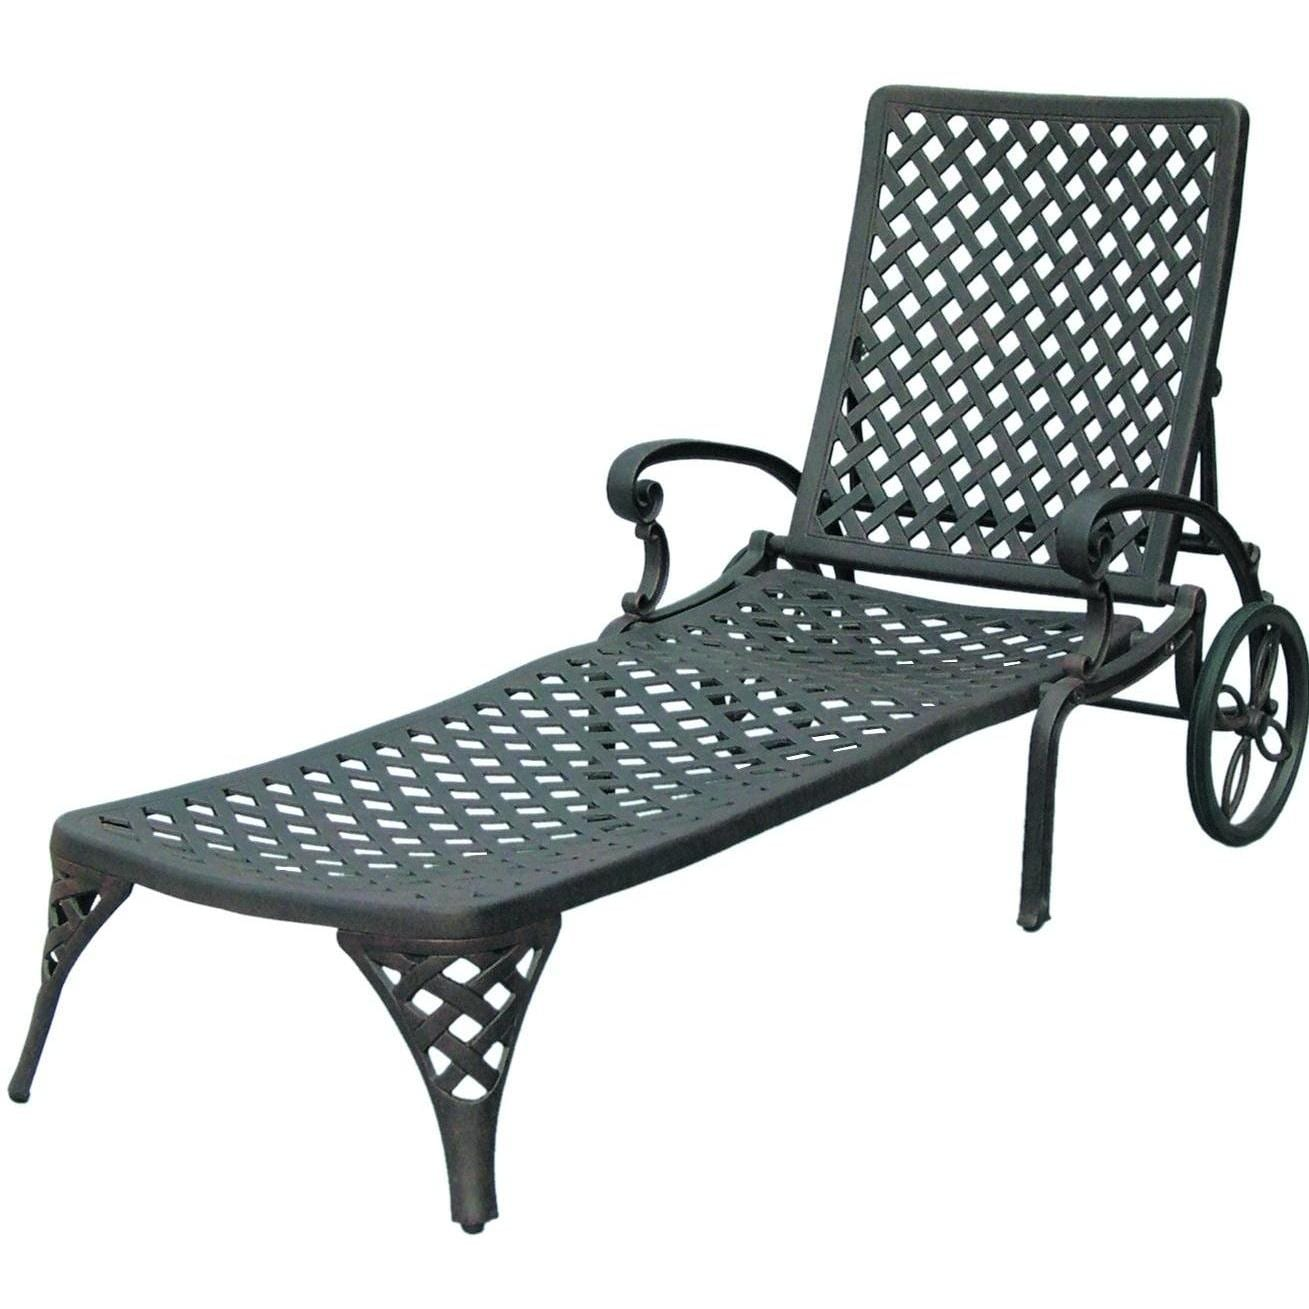 iron chaise lounge chairs nursery chair nz darlee nassau cast aluminum patio